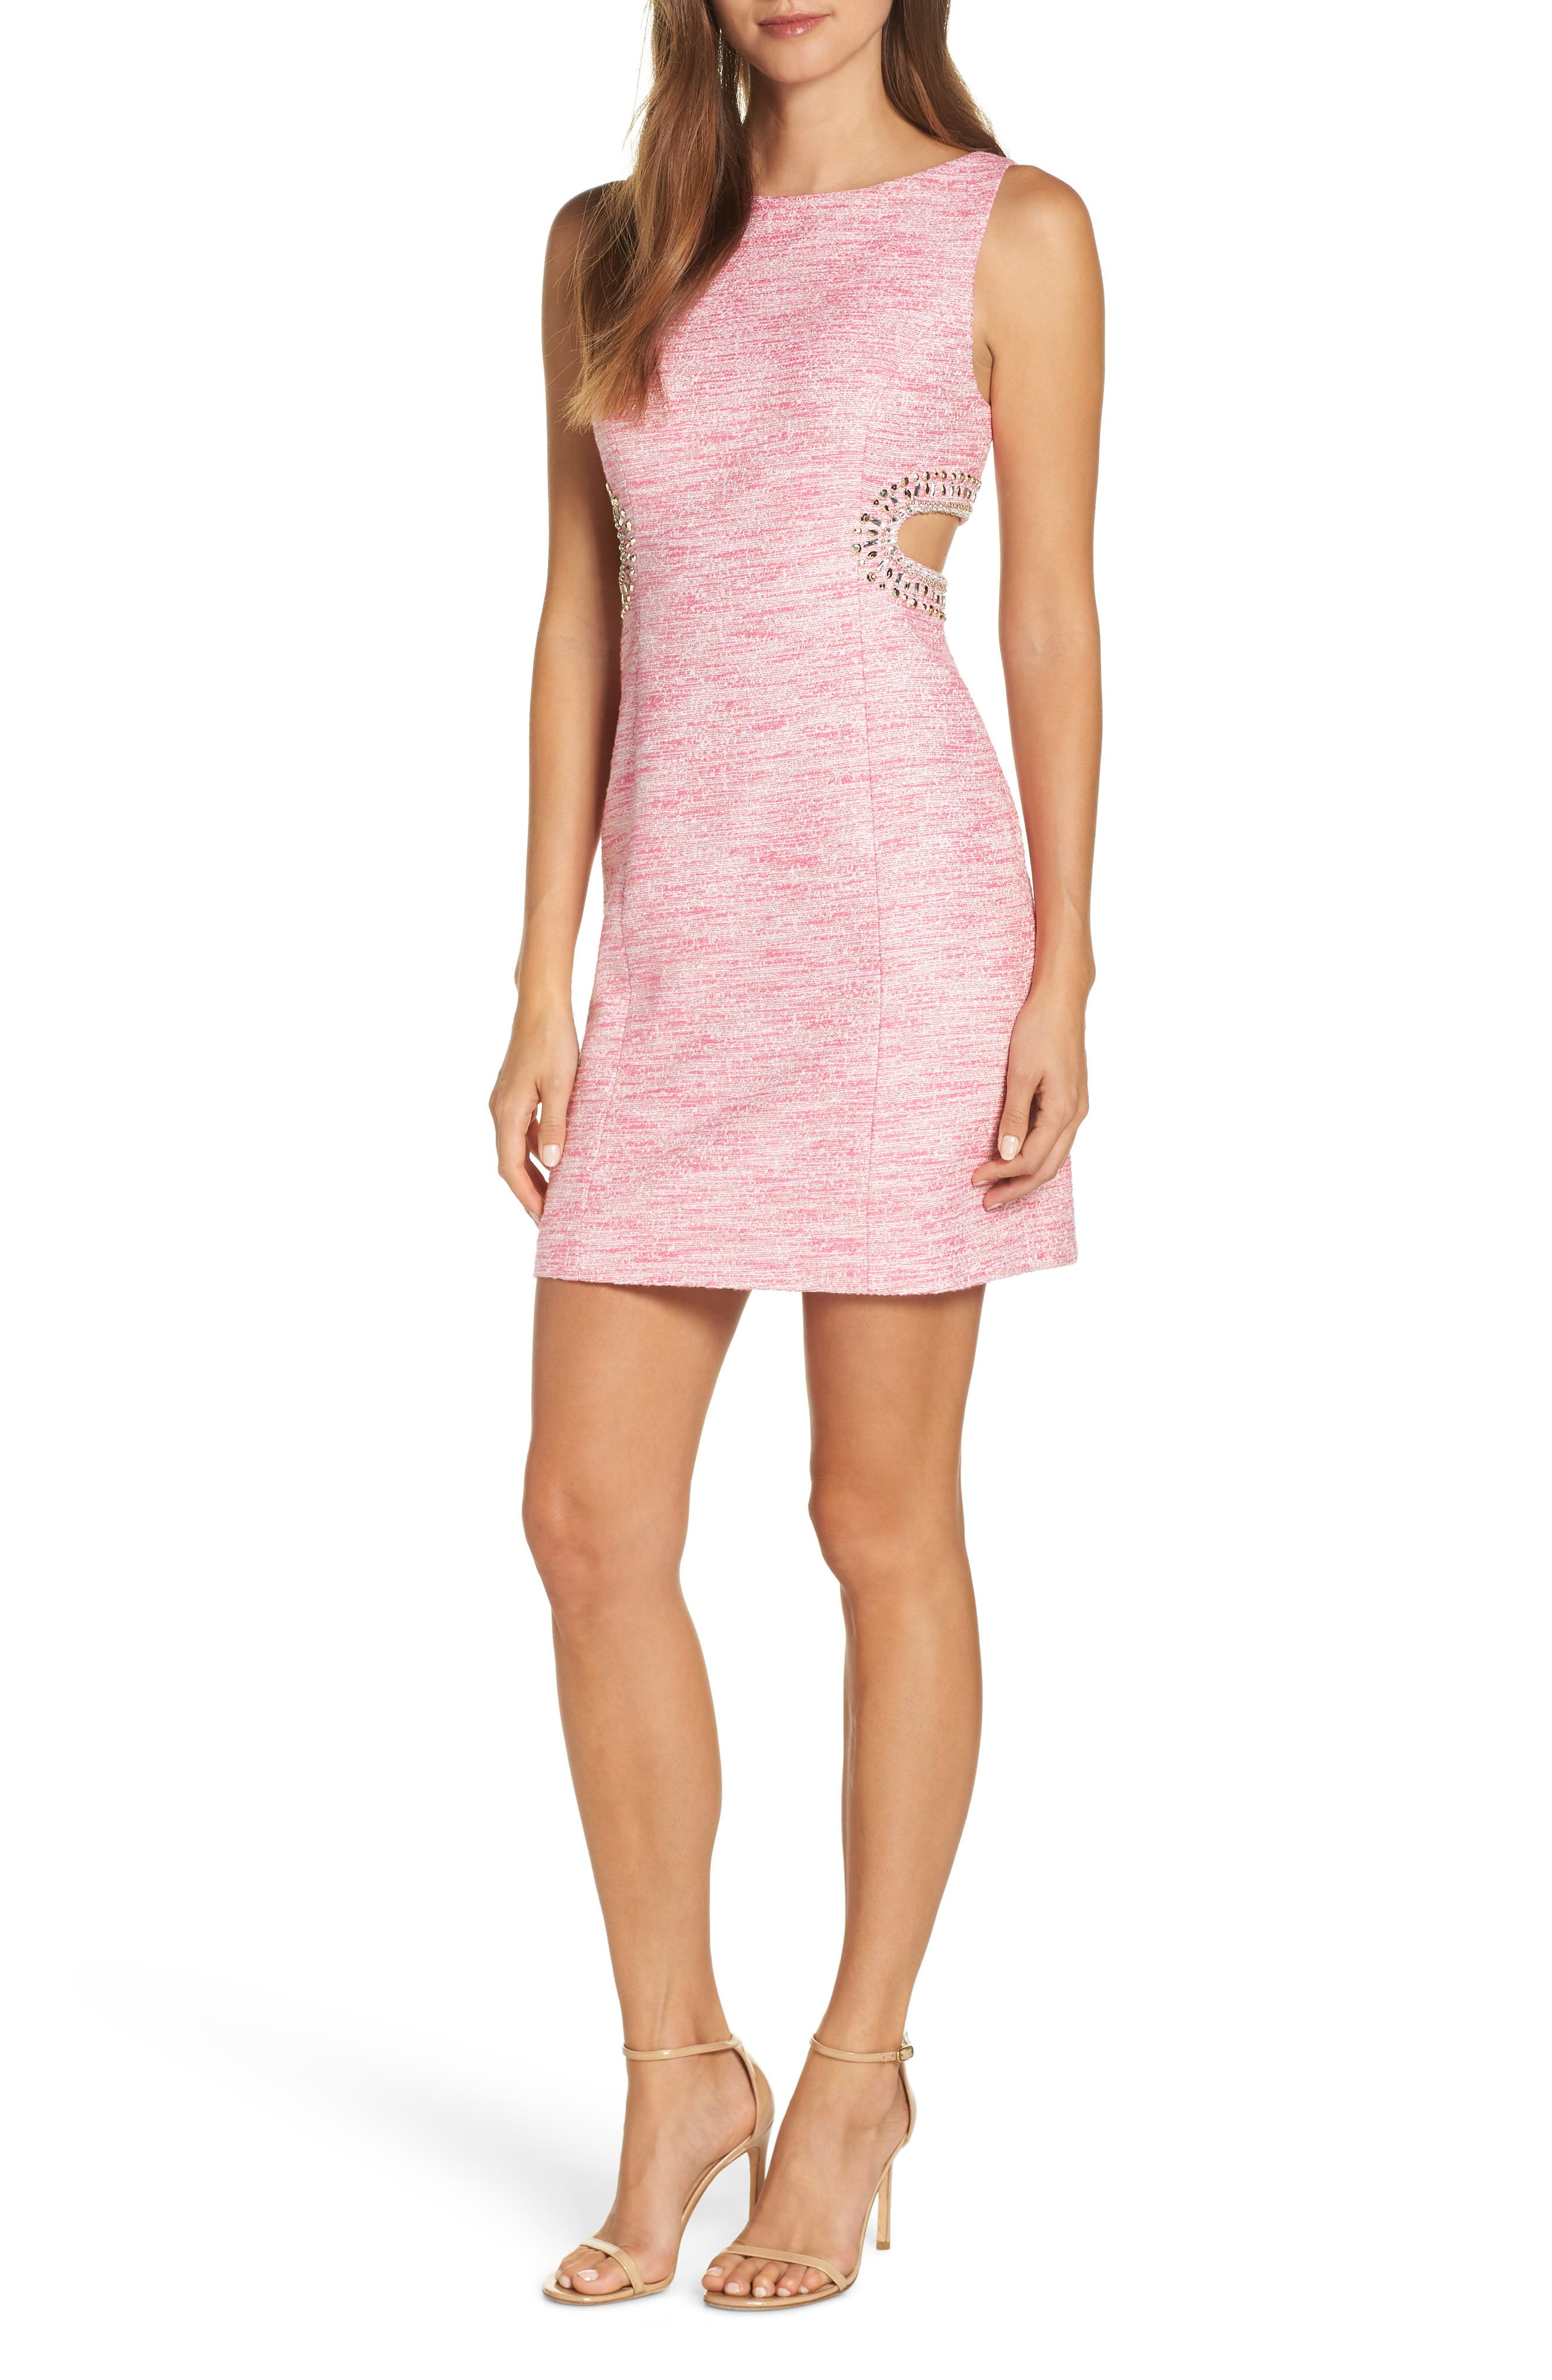 Lilly Pulitzer Catie Sheath Dress, Pink